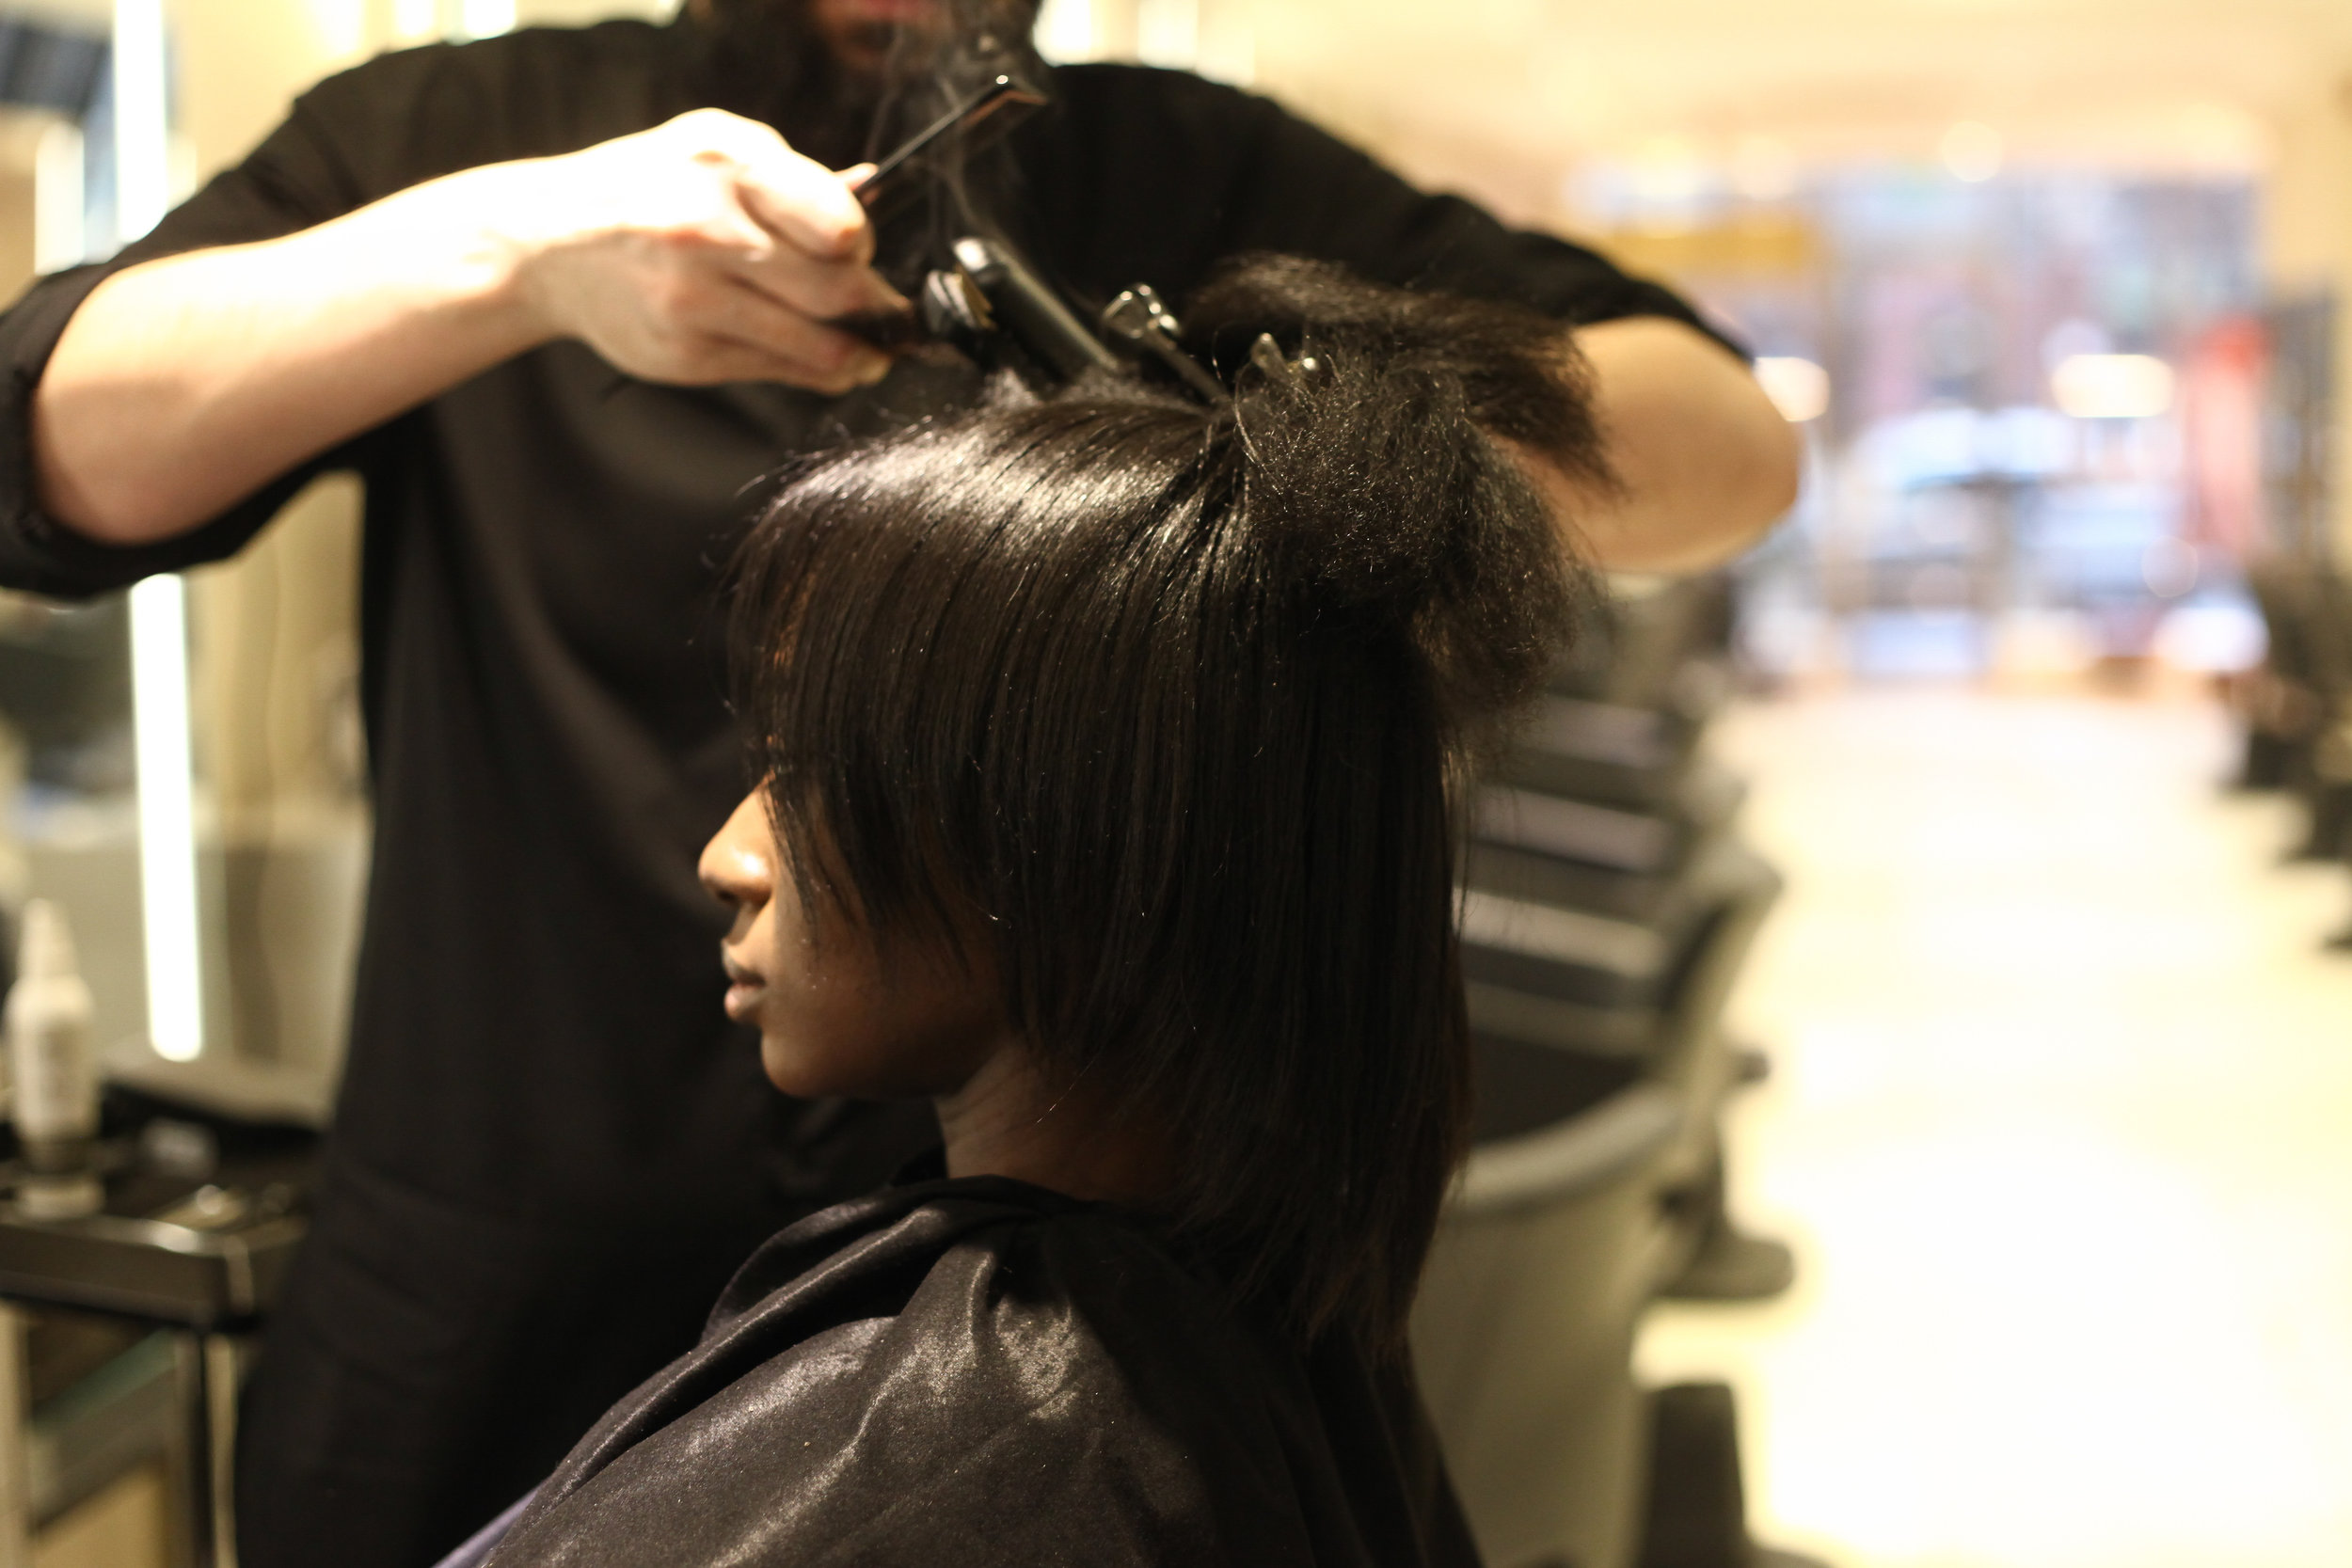 - To achieve a long-lasting, ultra smooth look, small sections were flat ironed with up to three passes